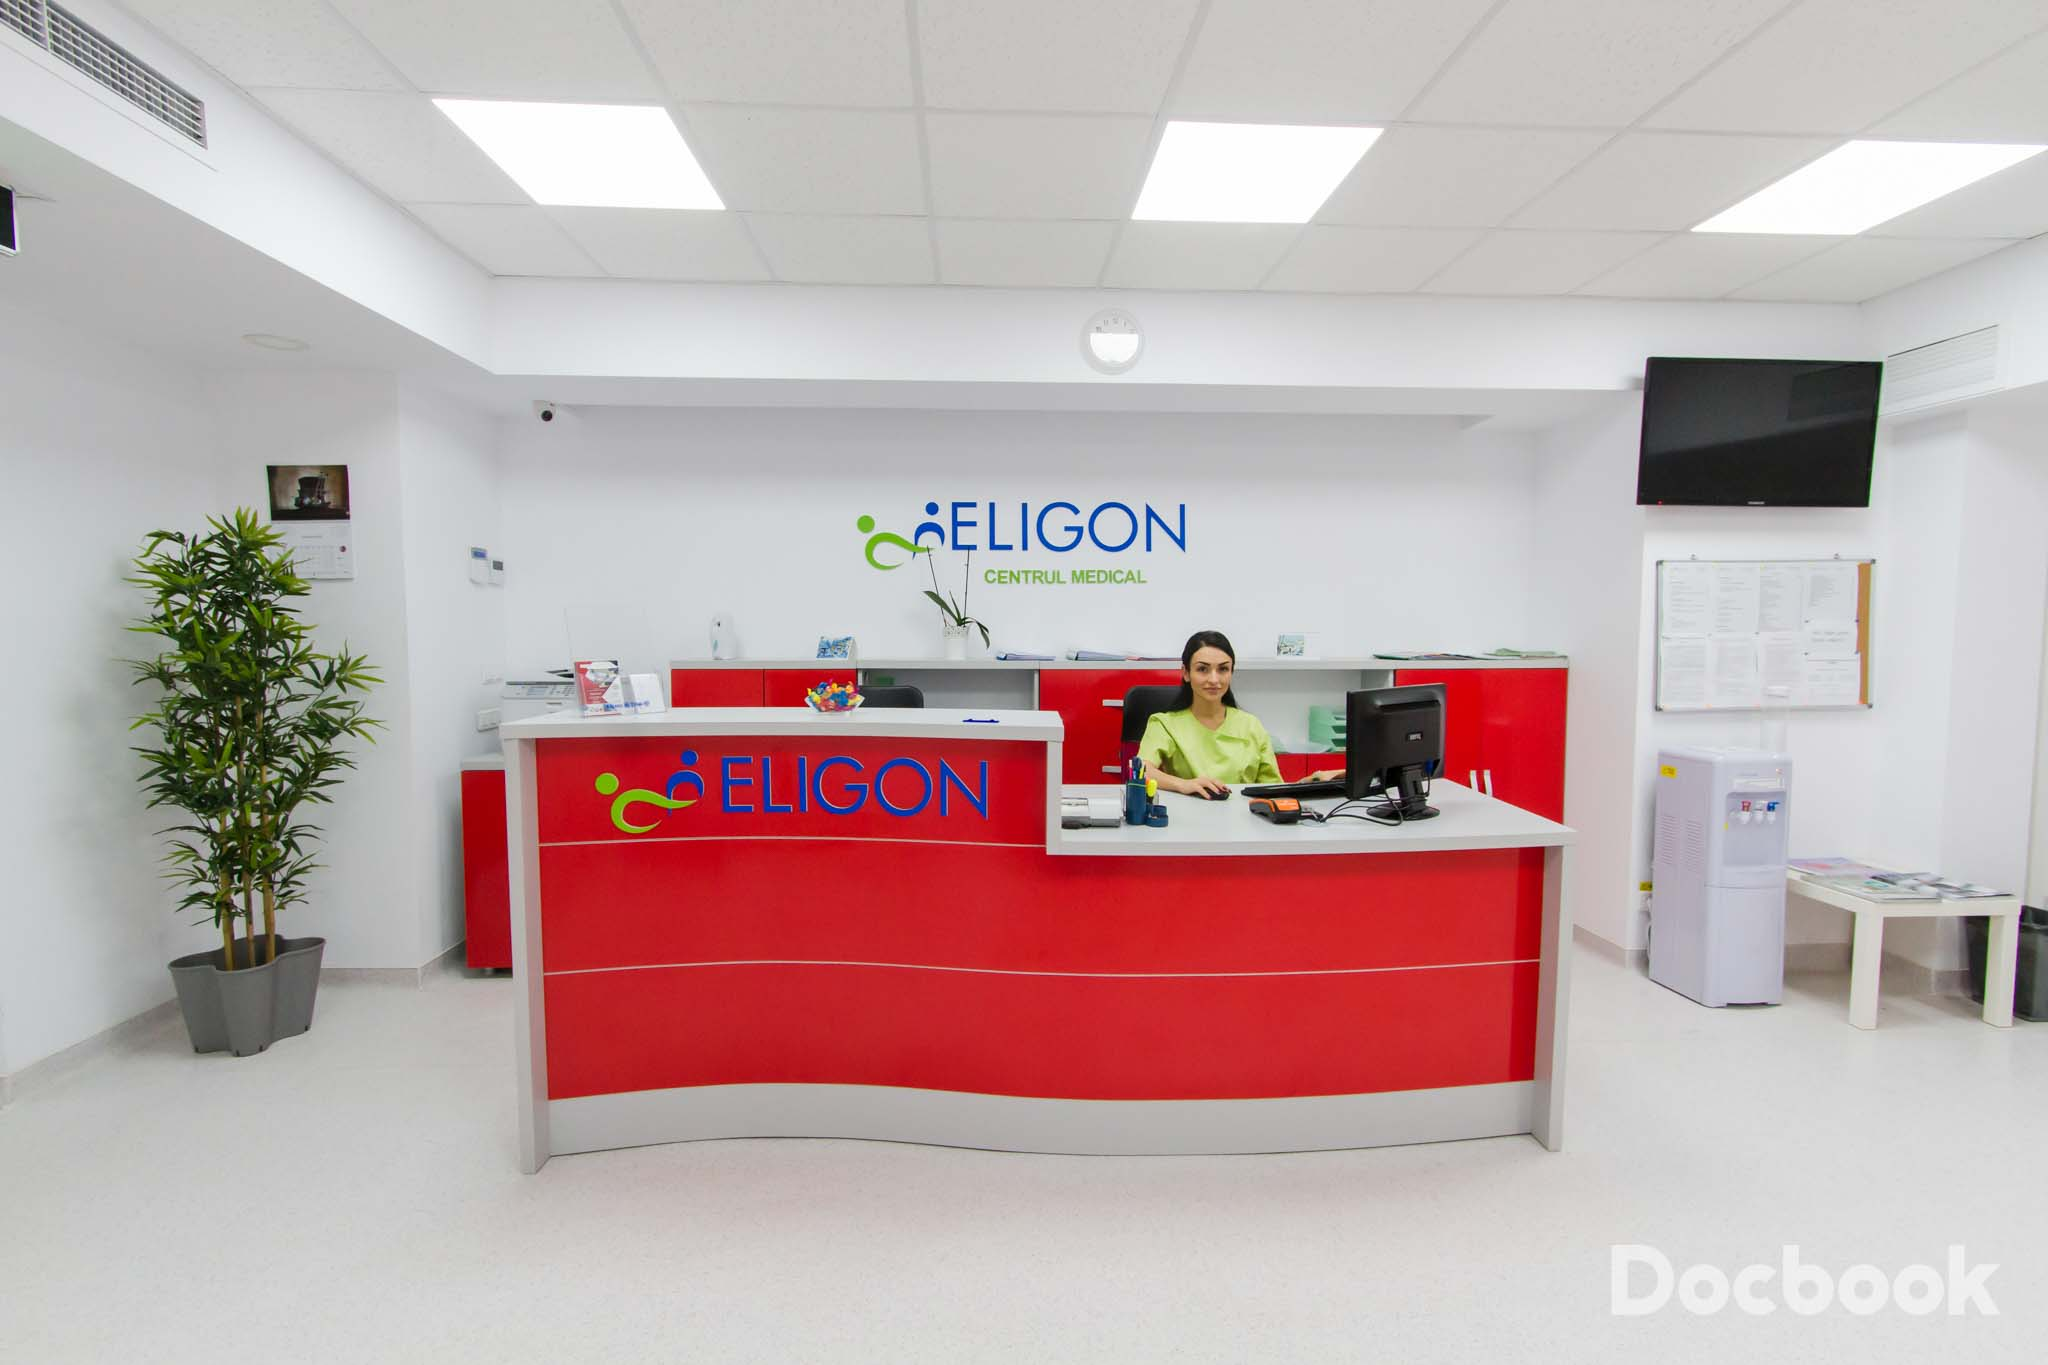 Clinica Centrul Medical Eligon